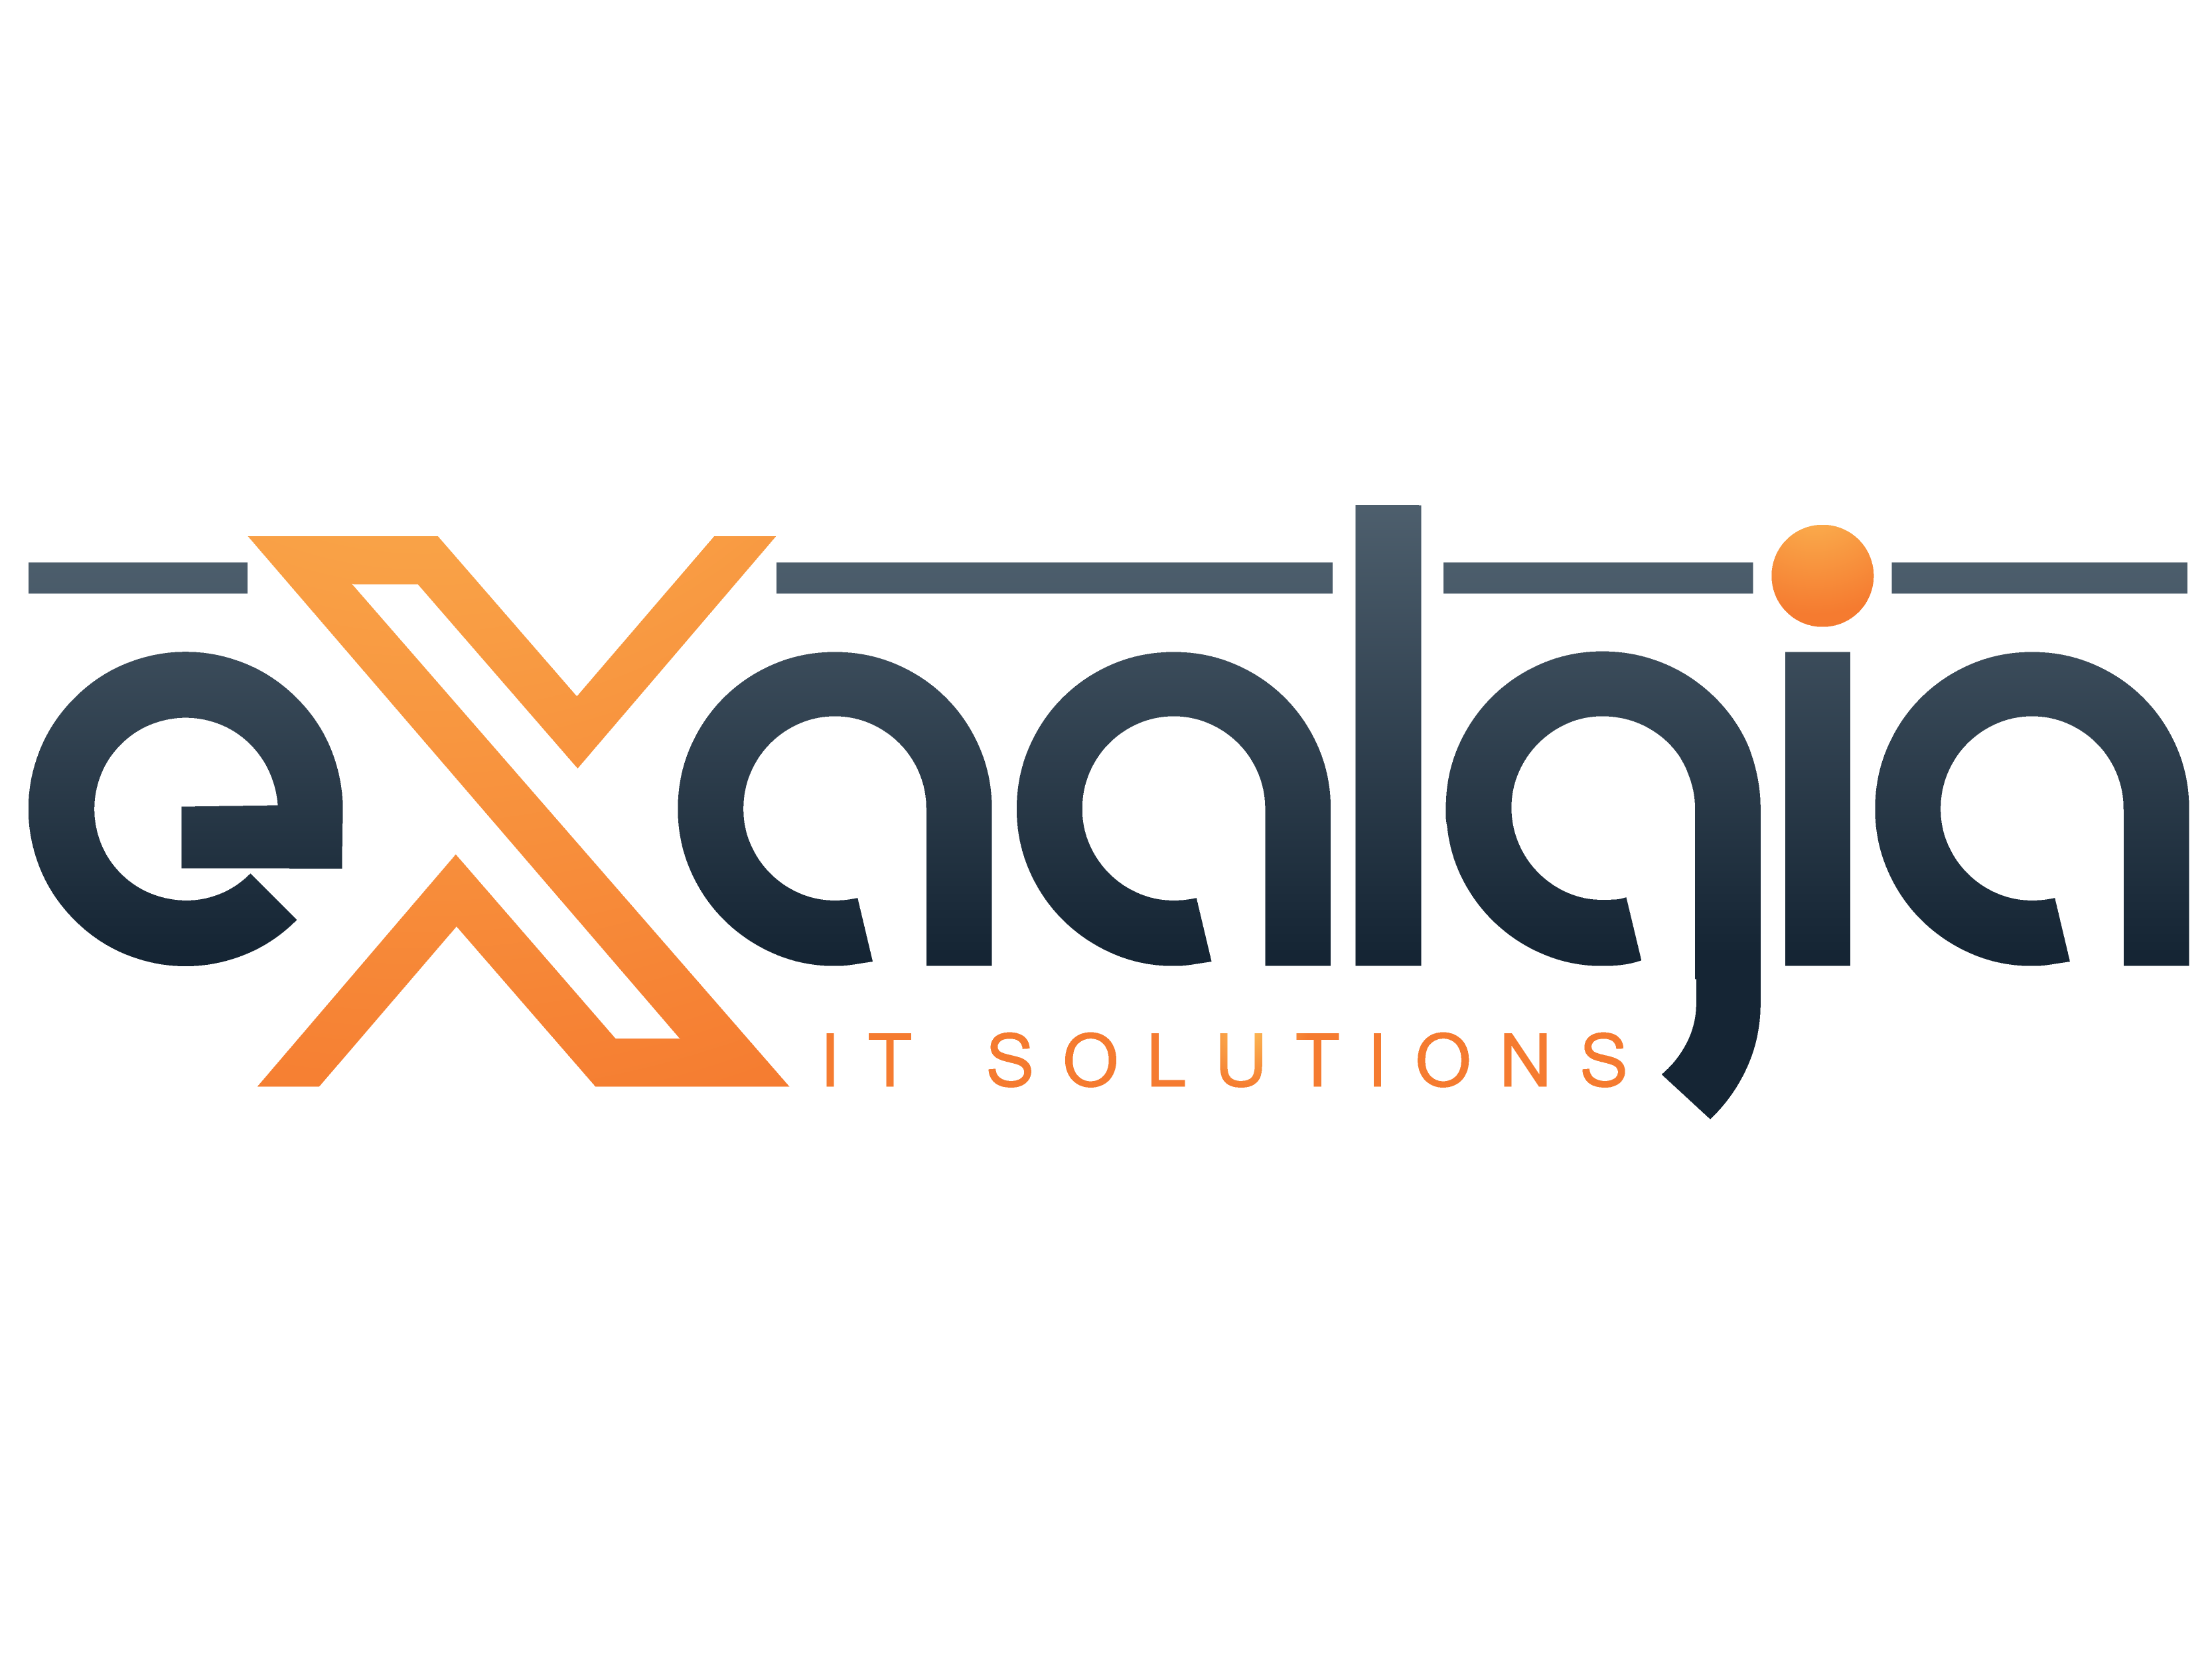 Top Enterprise Online Marketing Firm Logo: Exaalgia